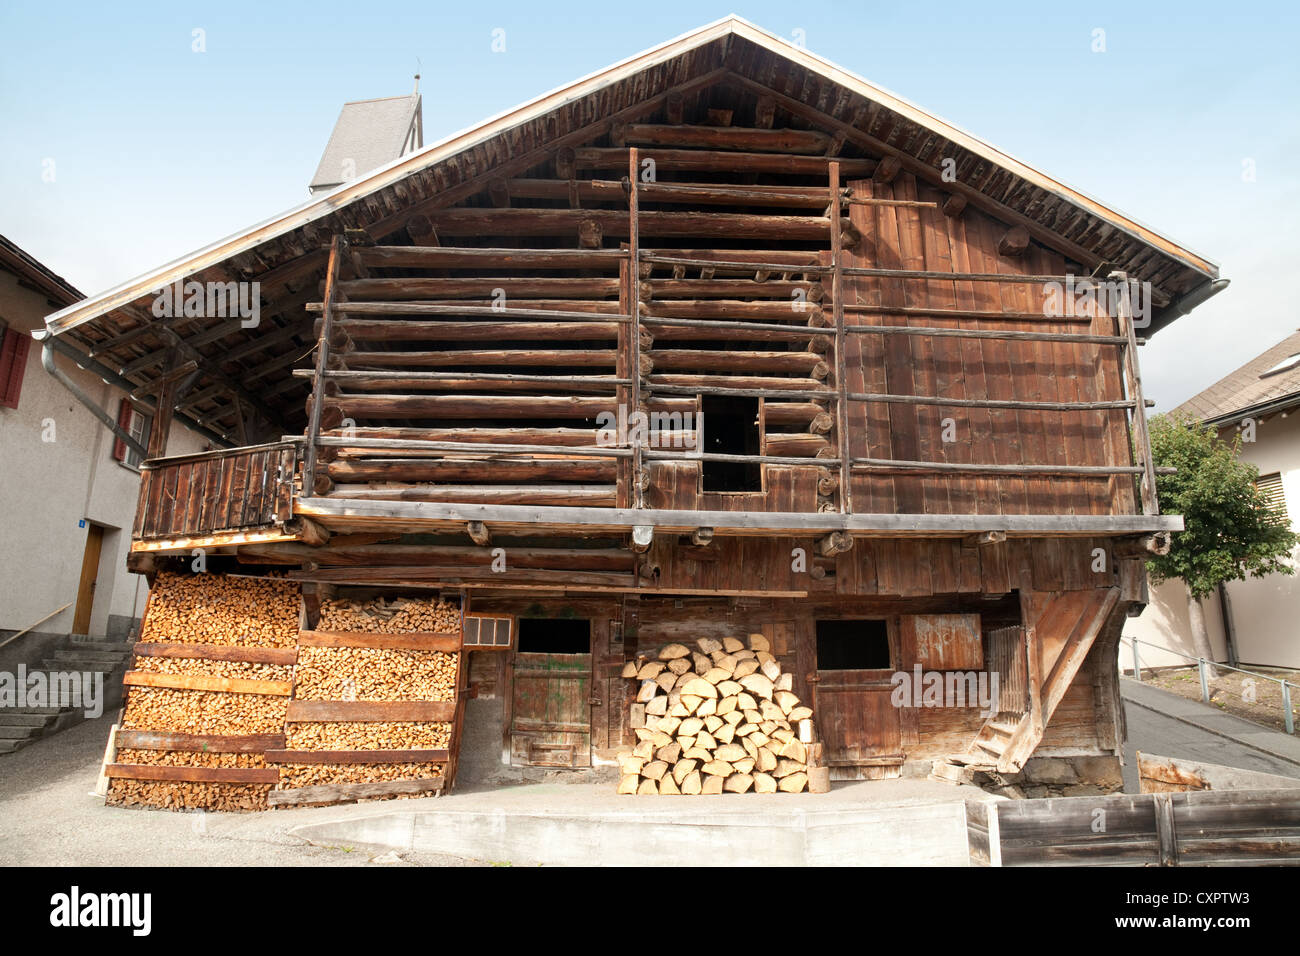 Swiss barn and wood store, Flims, Switzerland - Stock Image